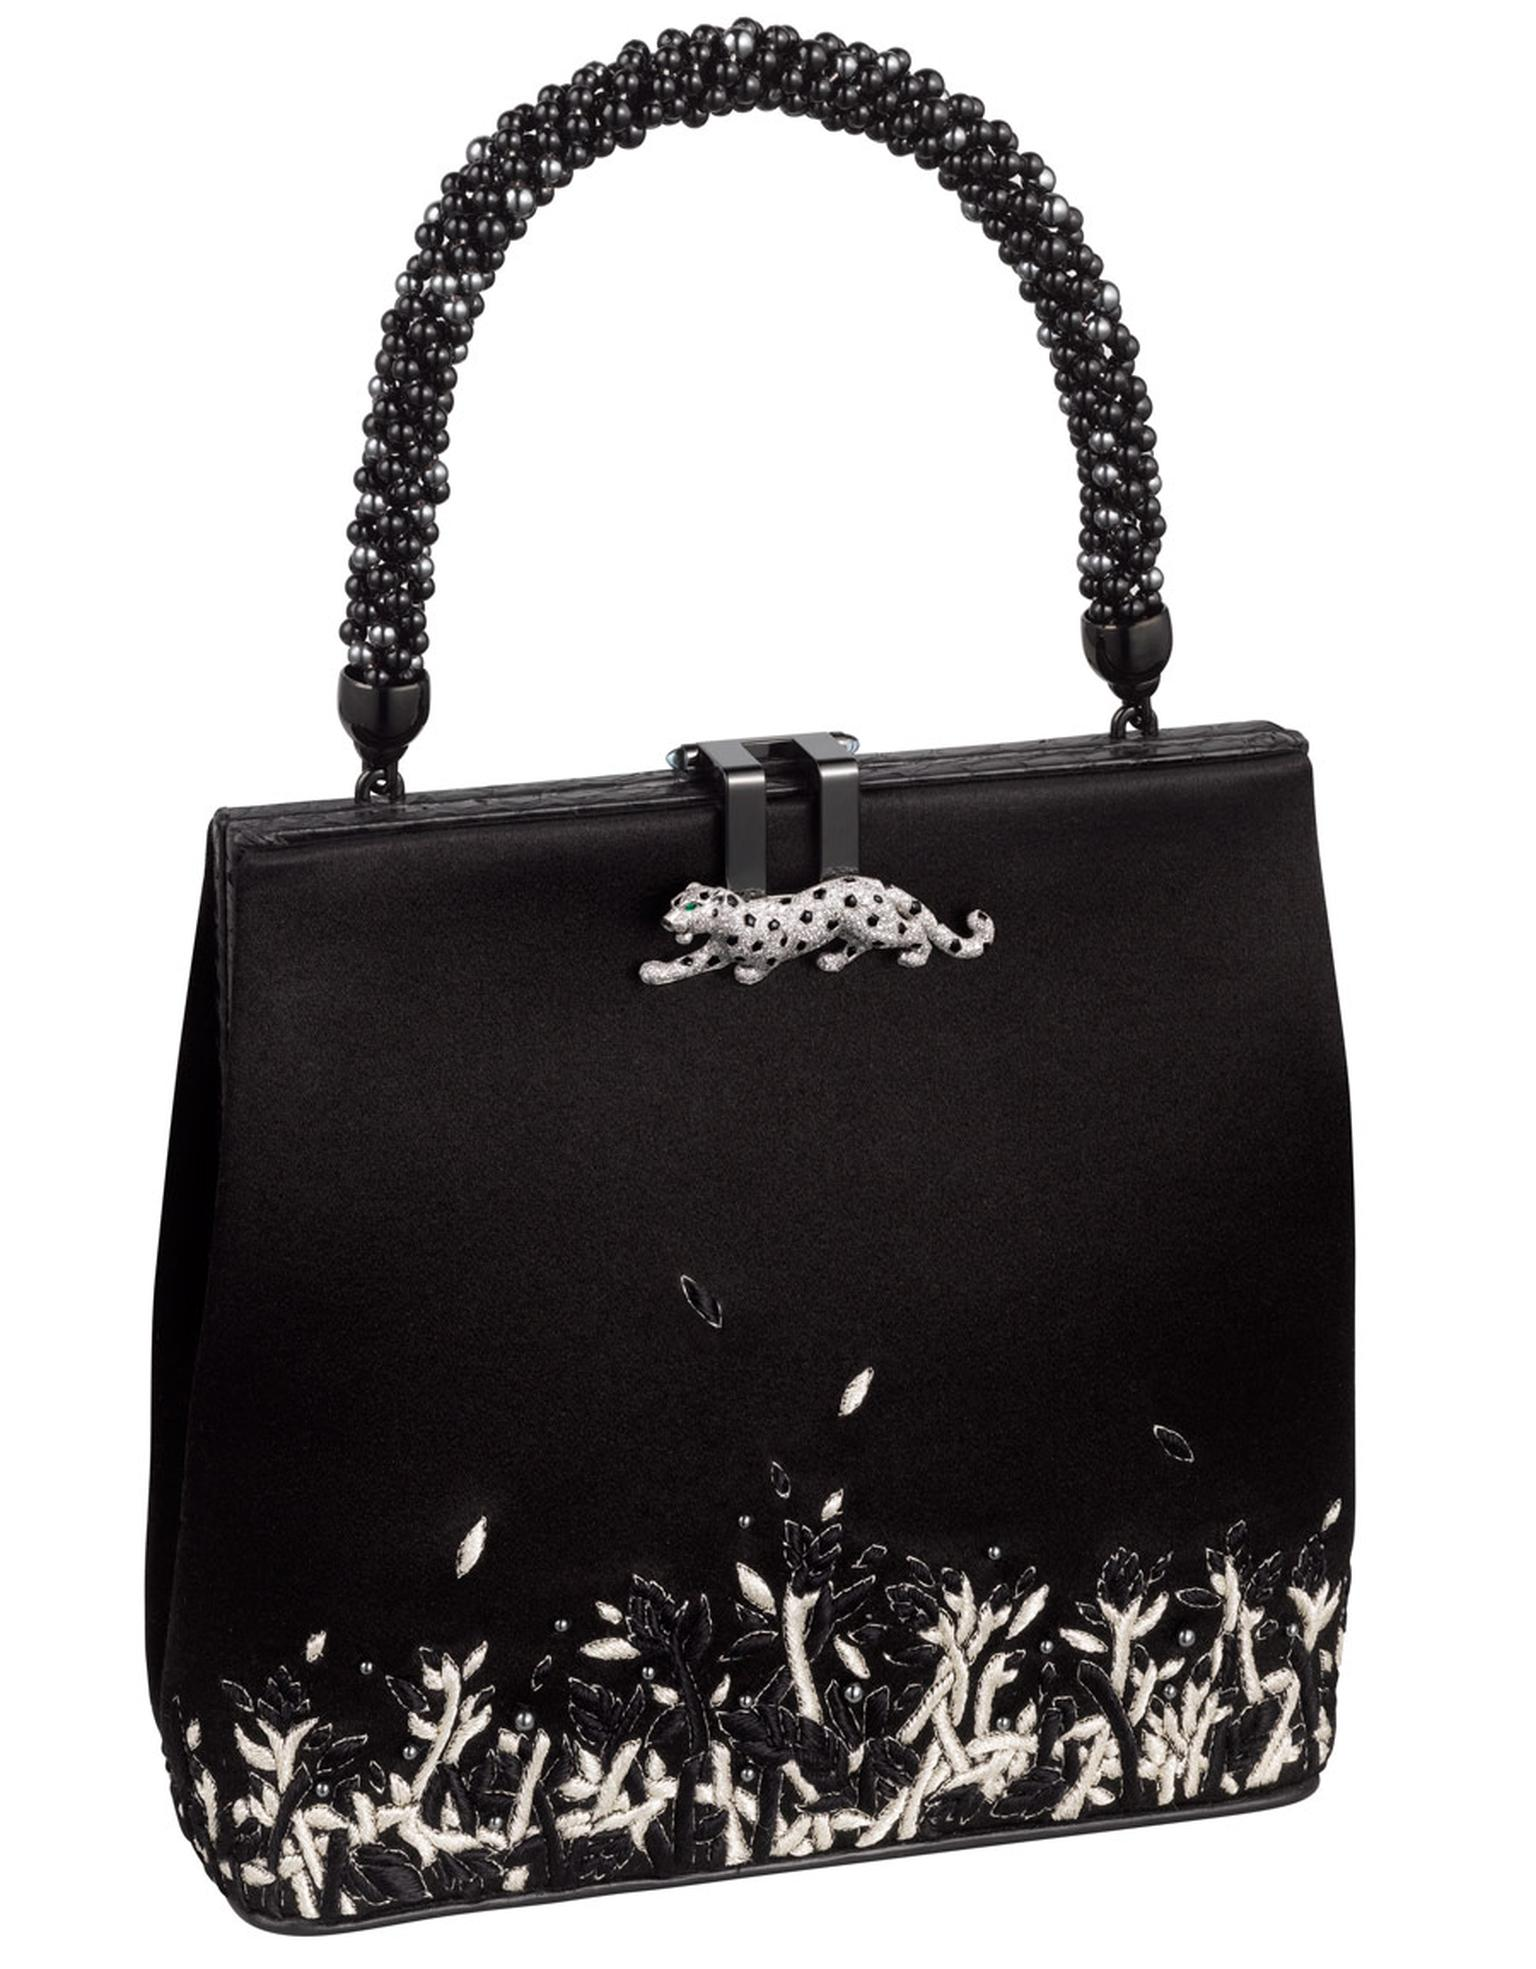 Cartier-Luxuriant-Bag-2